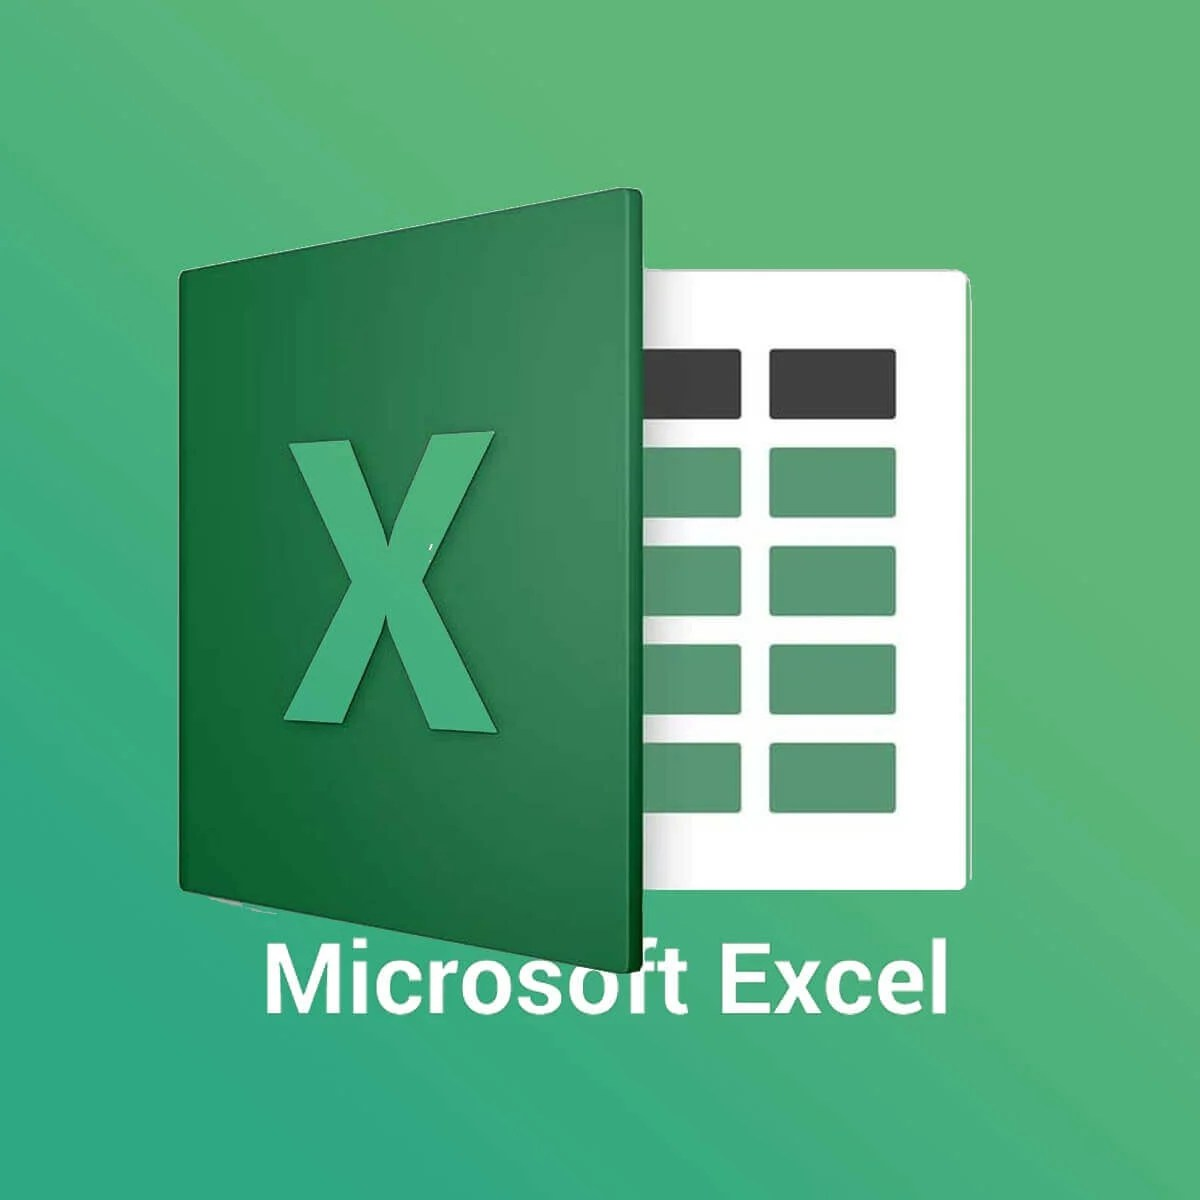 How To Fix Microsoft Excel S File Not Loaded Completely Error